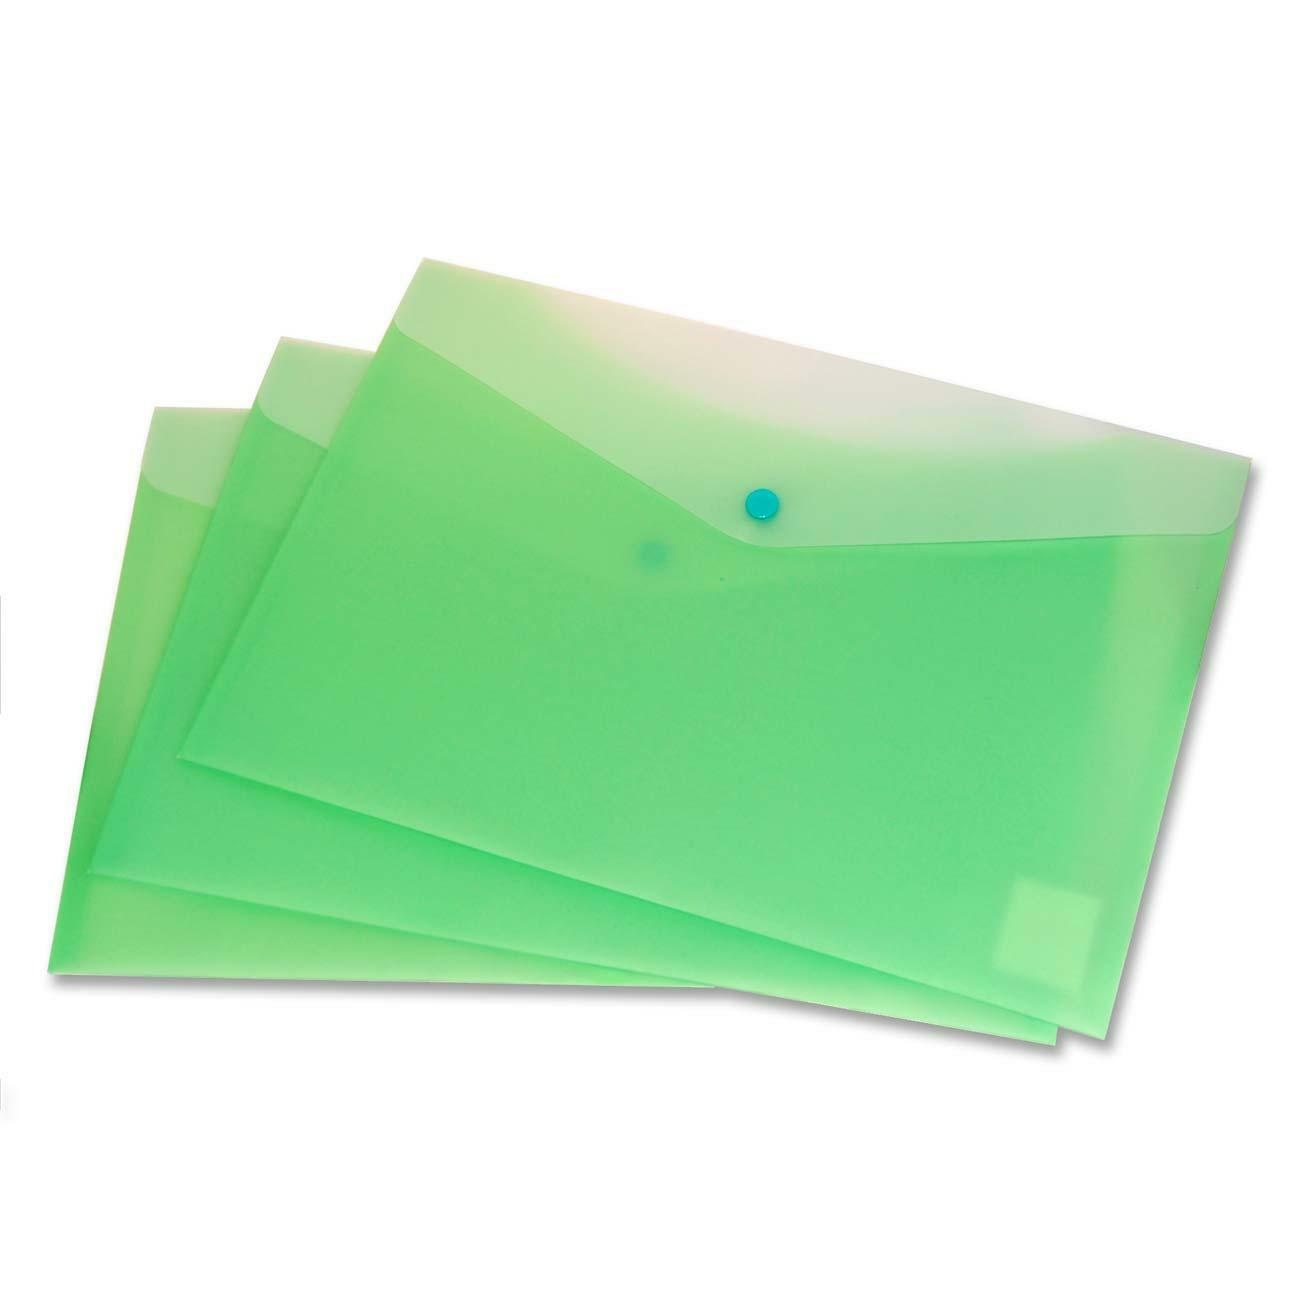 ocean stationery and office supplies office supplies envelopes